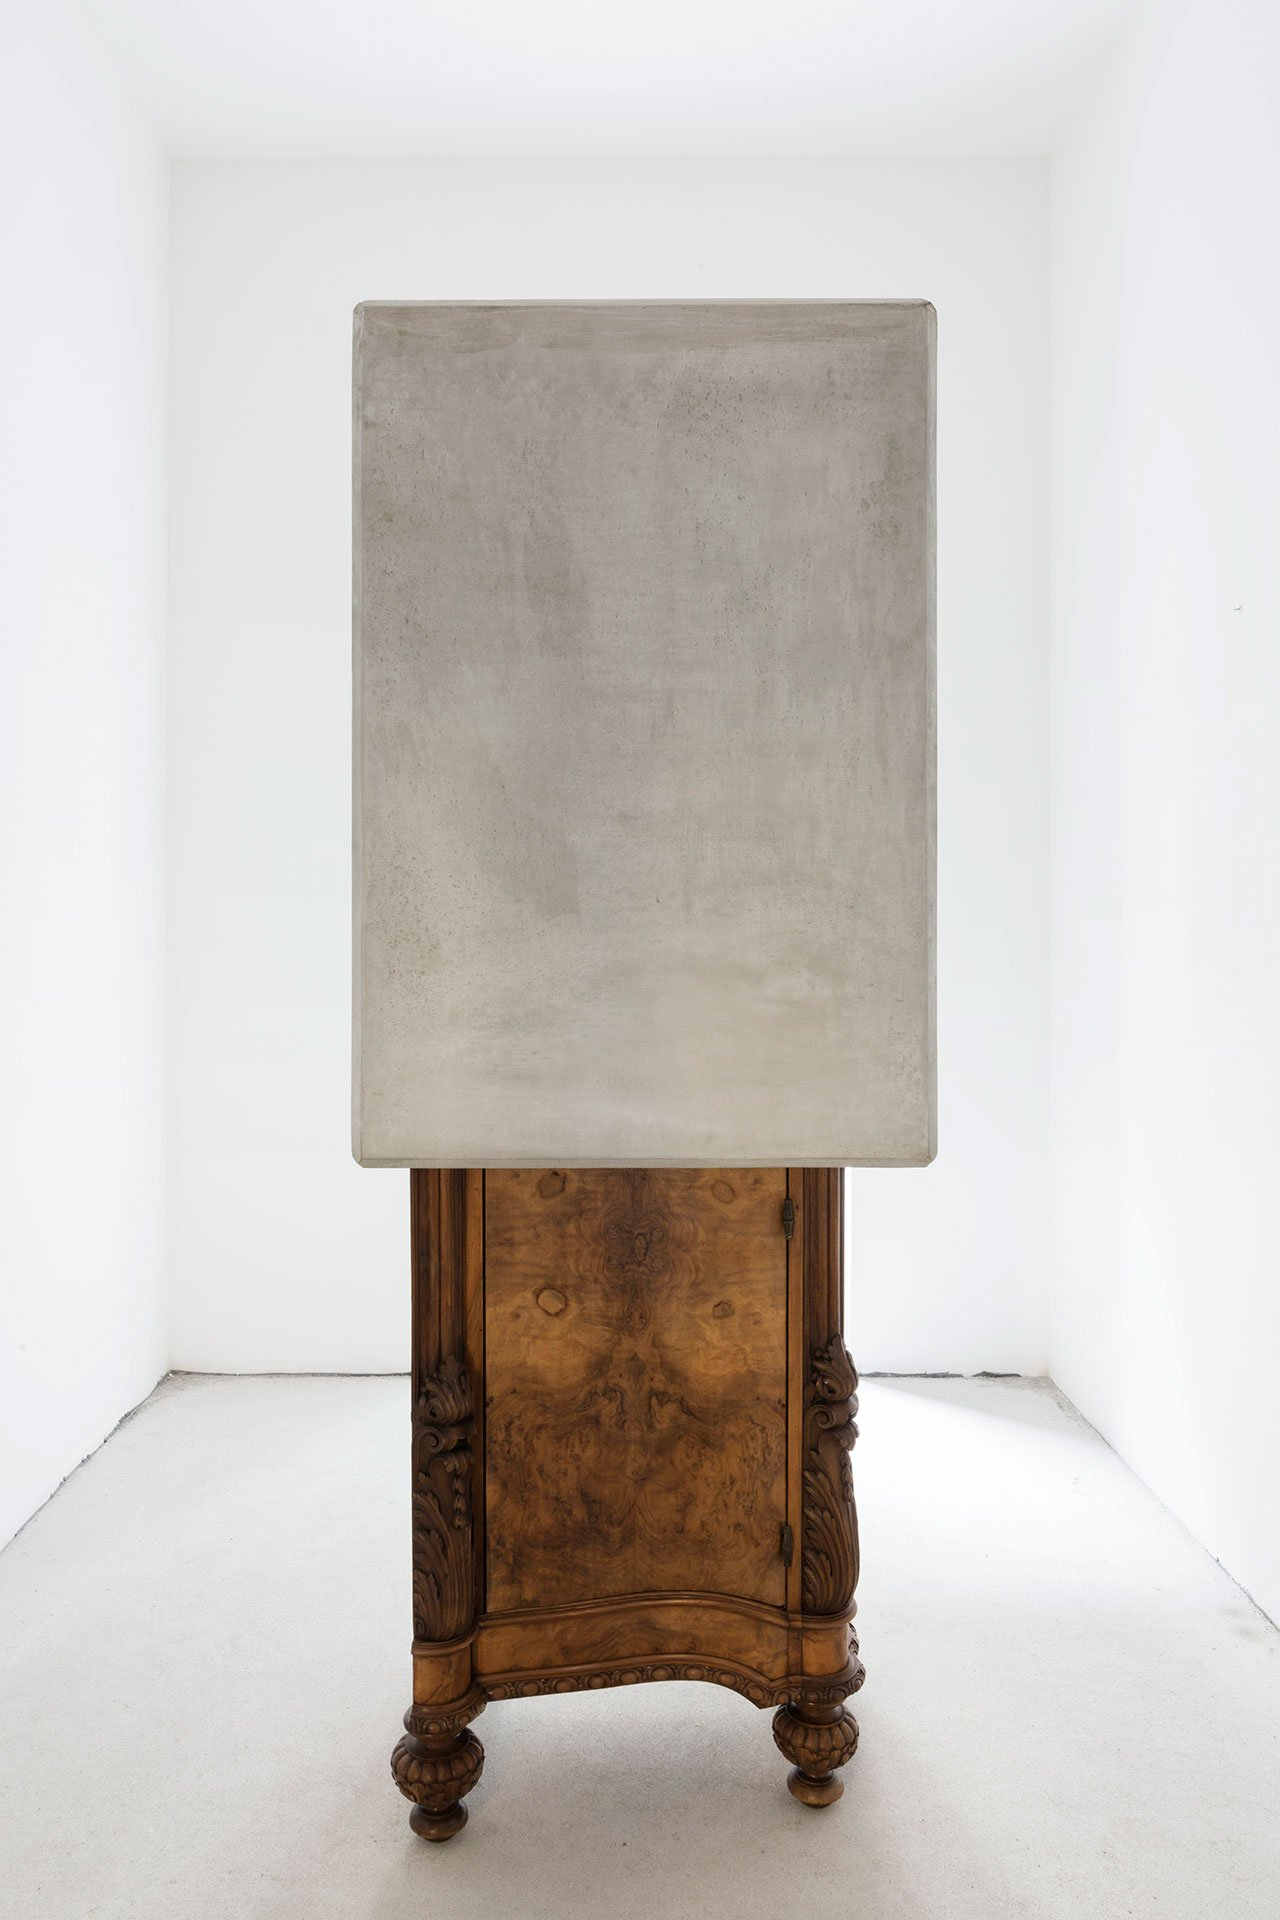 "Nucleo (Piergiorgio Robino + Marzia Ricci), ""Boolean"" And  (Cabinet), 2017. Concrete, vintage furniture, 72 x 80 x 218h cm. Unique piece in an edition 1+1. Photo by Studio Pepe Fotografia."